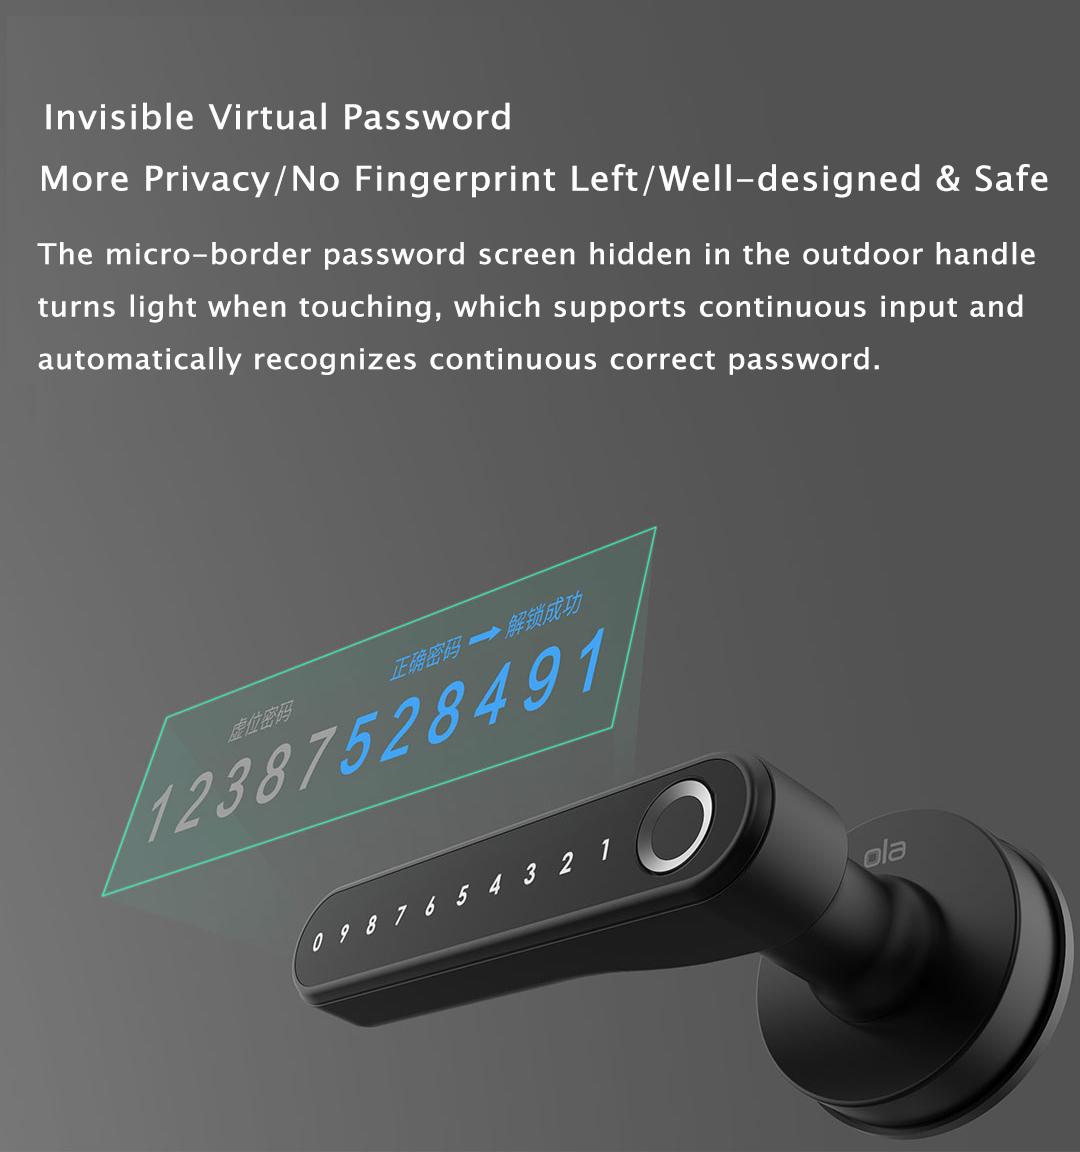 Ola Intelligent 35-55mm Thickness Wooden Door Lock Fingerprint Password Lock Separated Integrated Type Bluetooth USB Connection Works with Mijia APP from Xiaomi Youpin